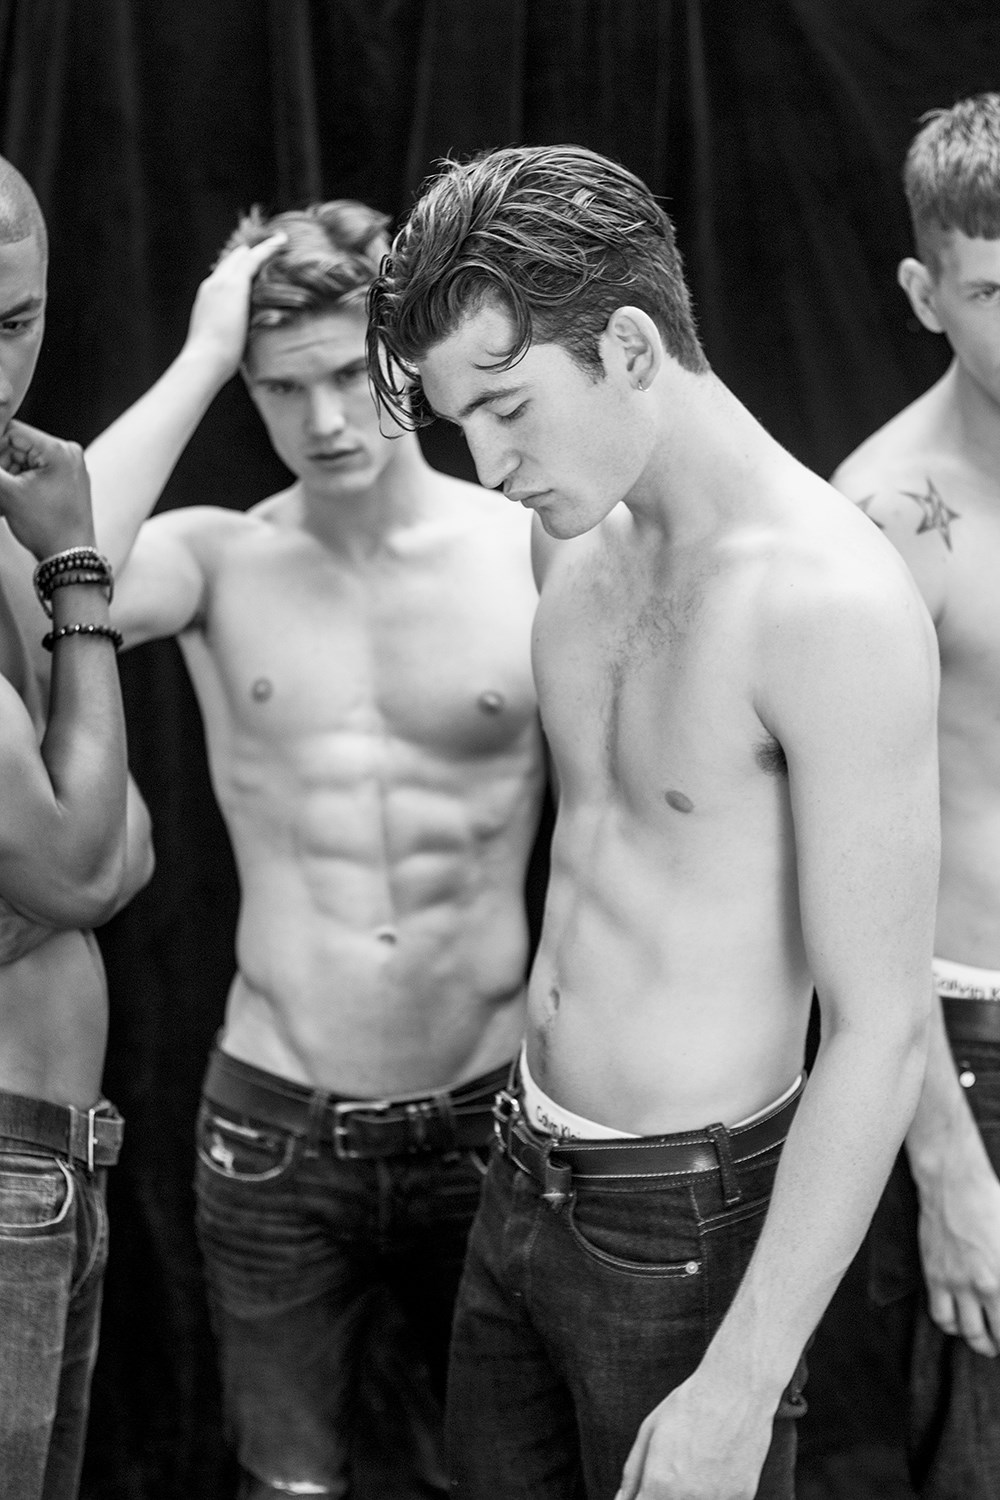 Boys of Summer by Gregory Prescott